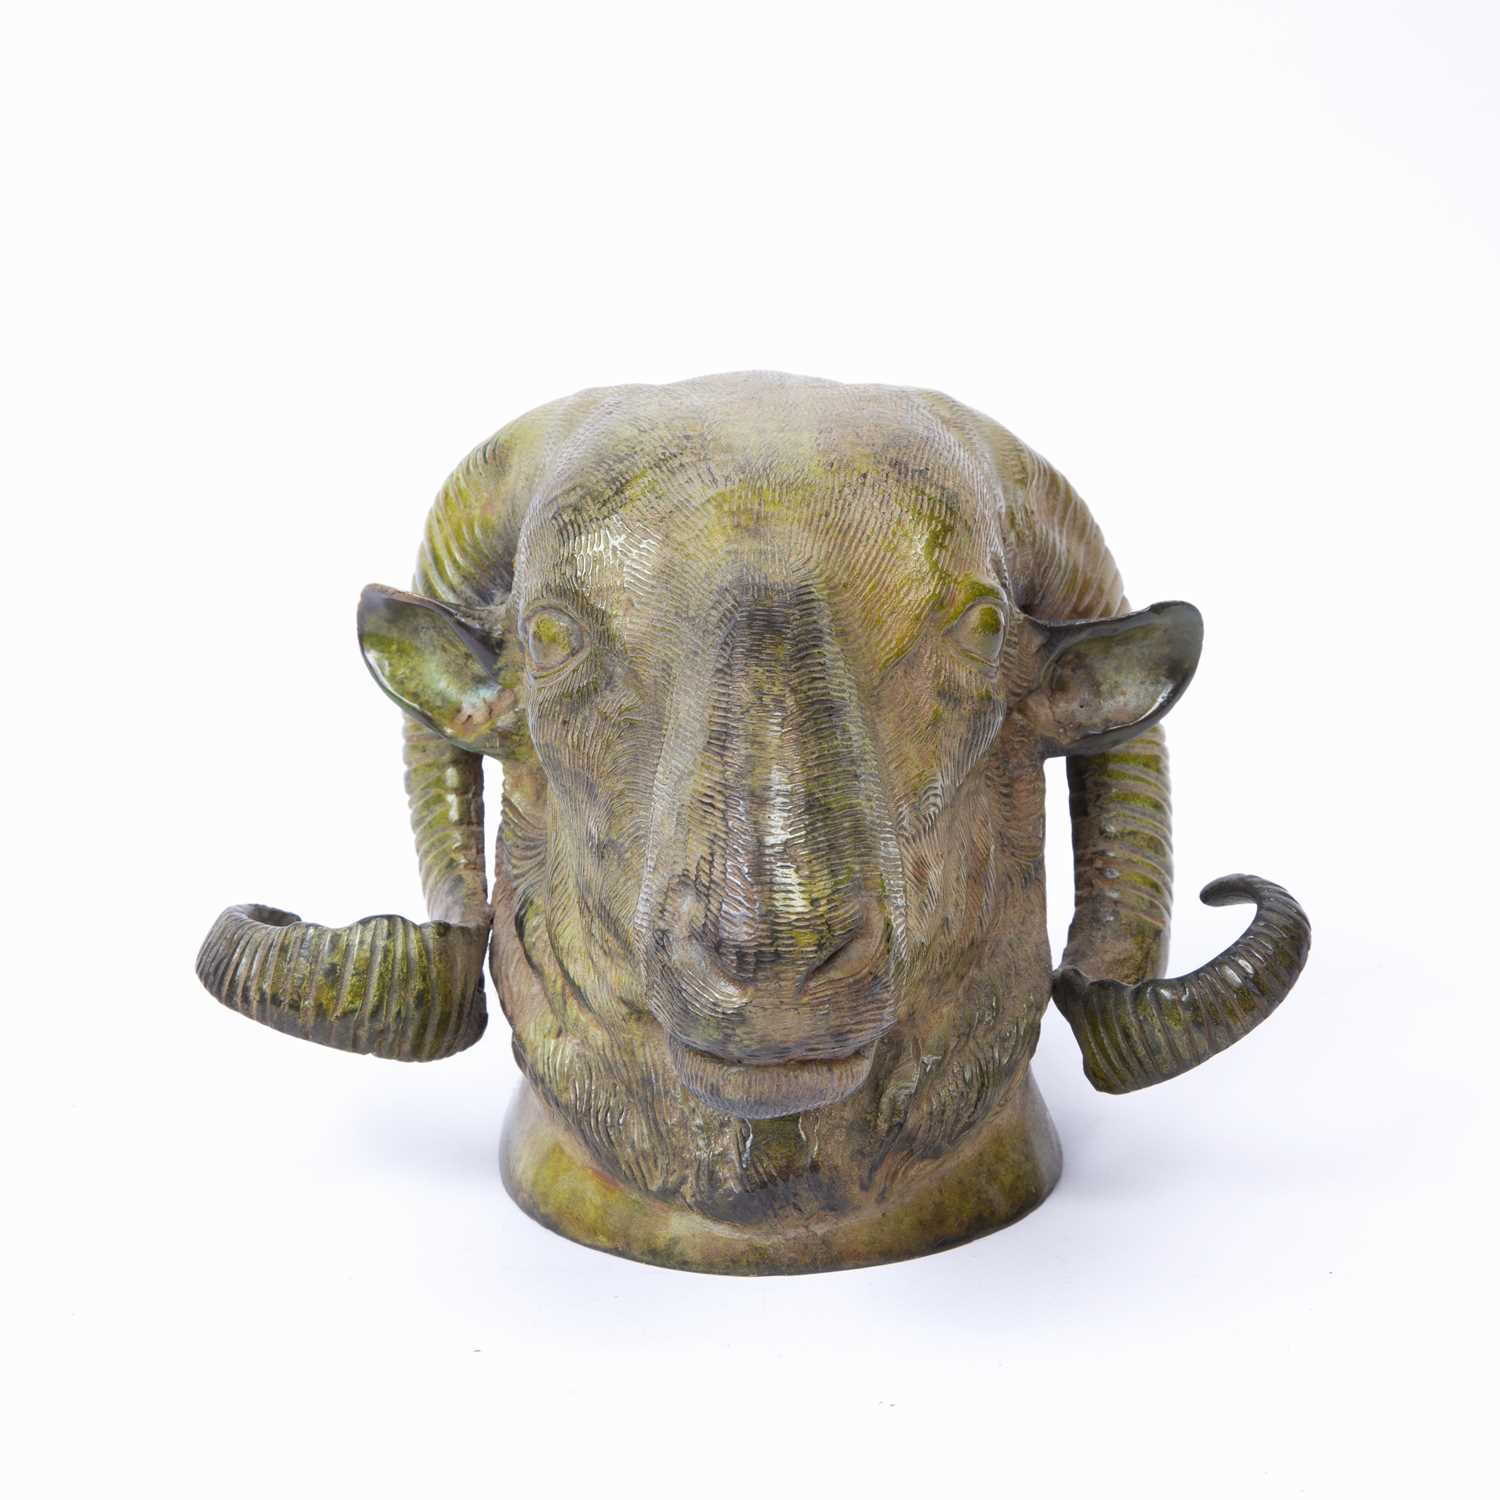 A 19th century bronze ram's head wall mount with green patina, 15cm high - Image 3 of 3